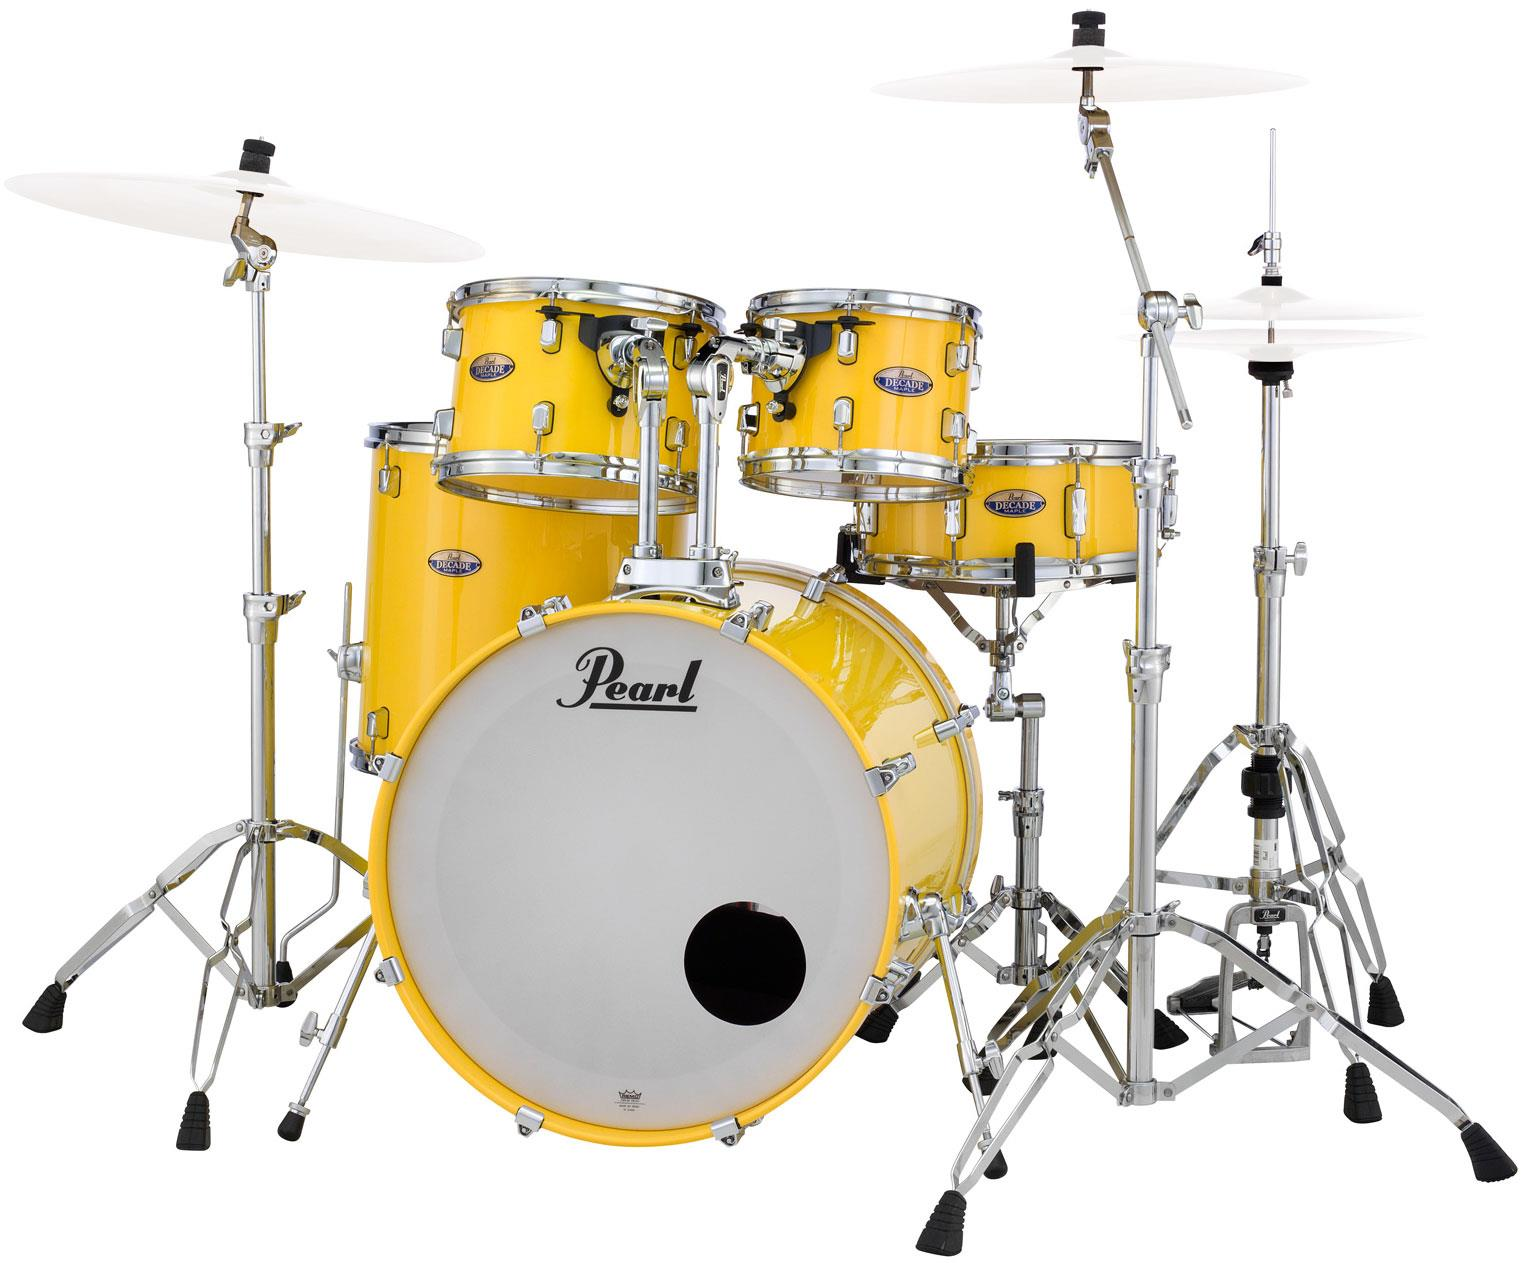 Pearl Dmp925s C228 Decade Maple Solid Yellow Keymusic